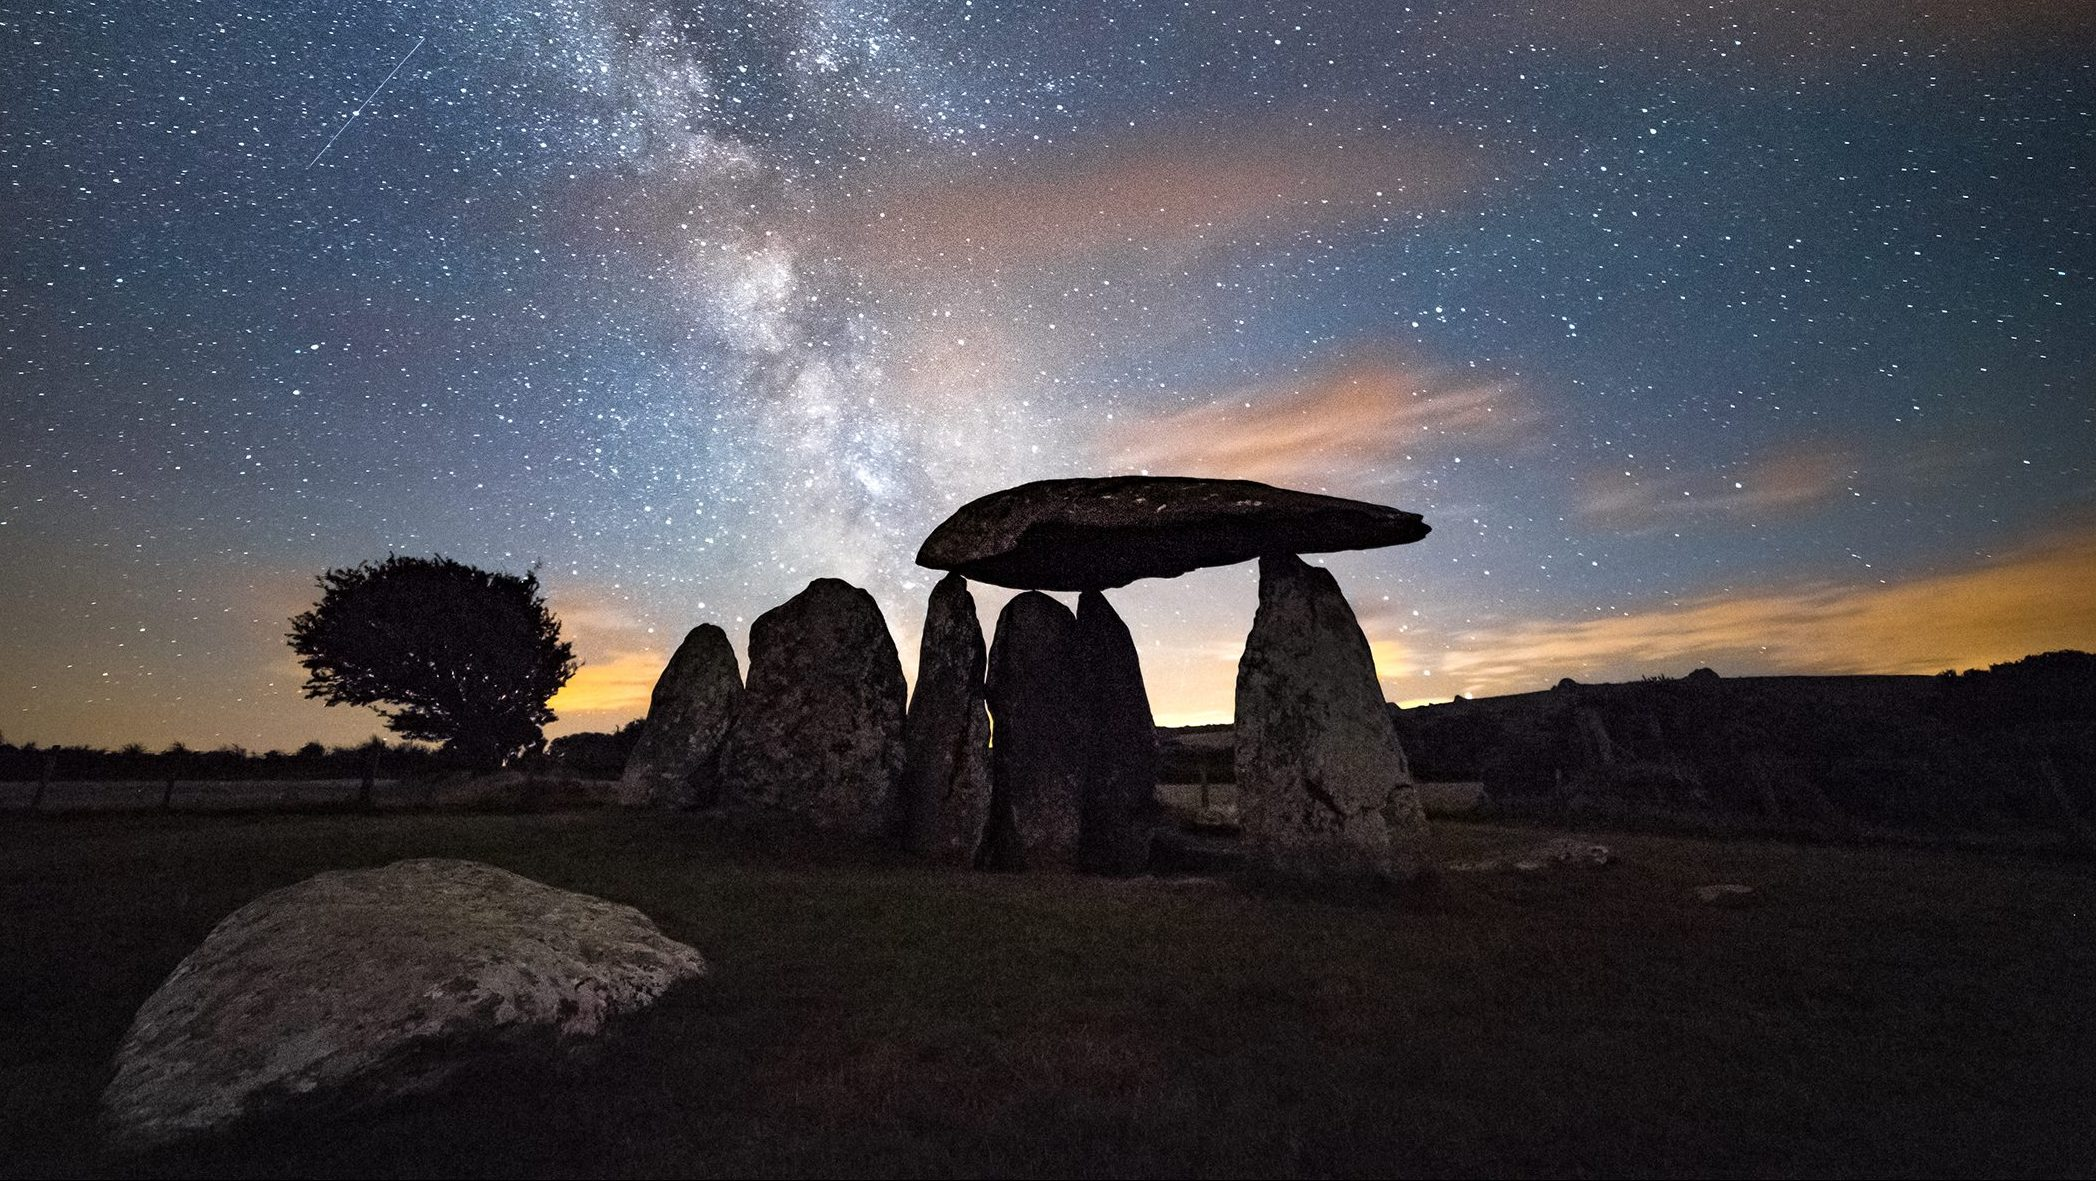 Star trails at Pentre Ifan burial chamber